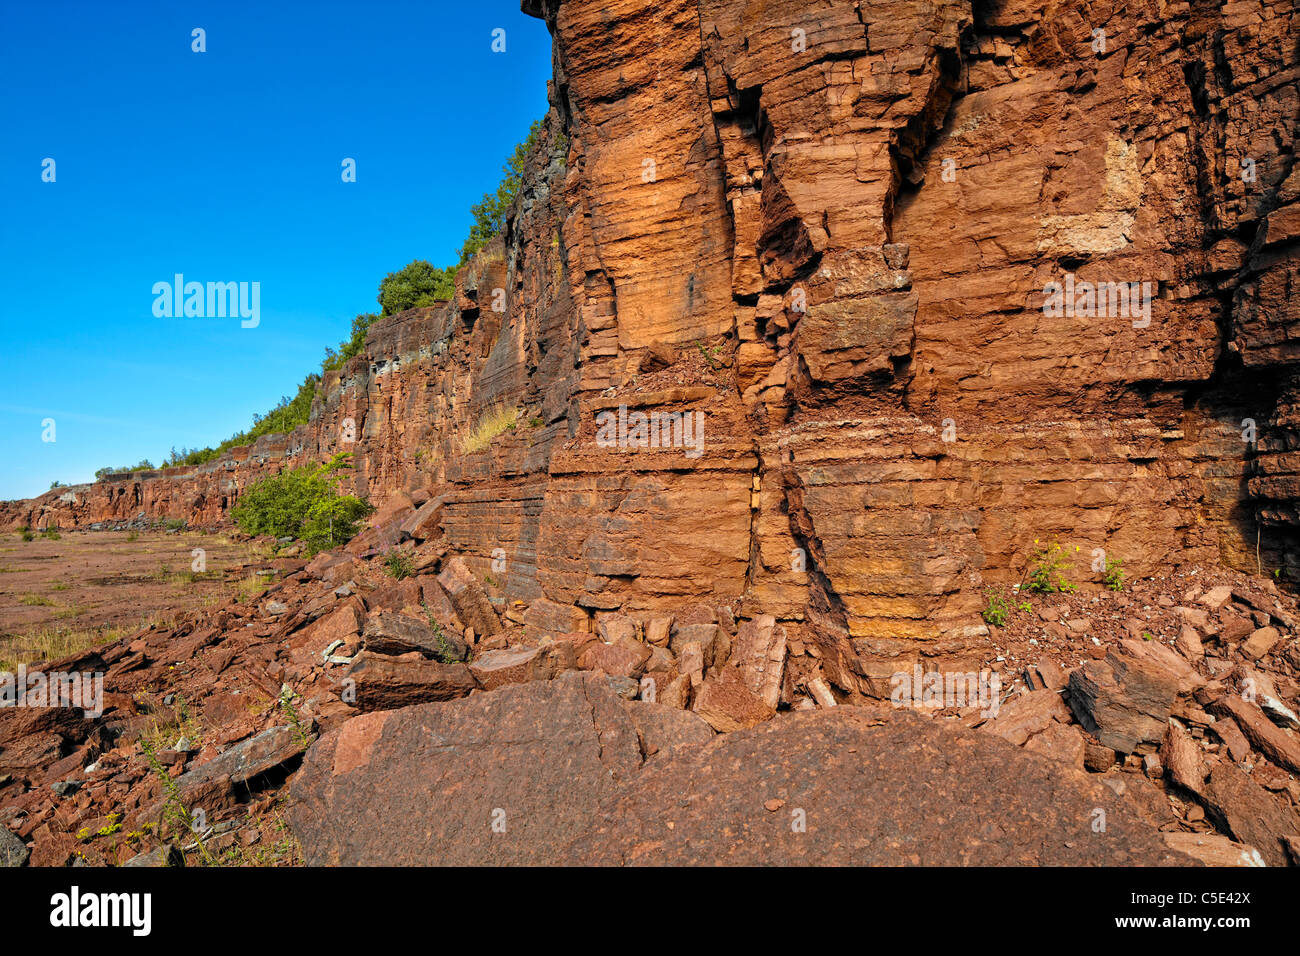 Close-up of shale rocks against clear blue sky - Stock Image